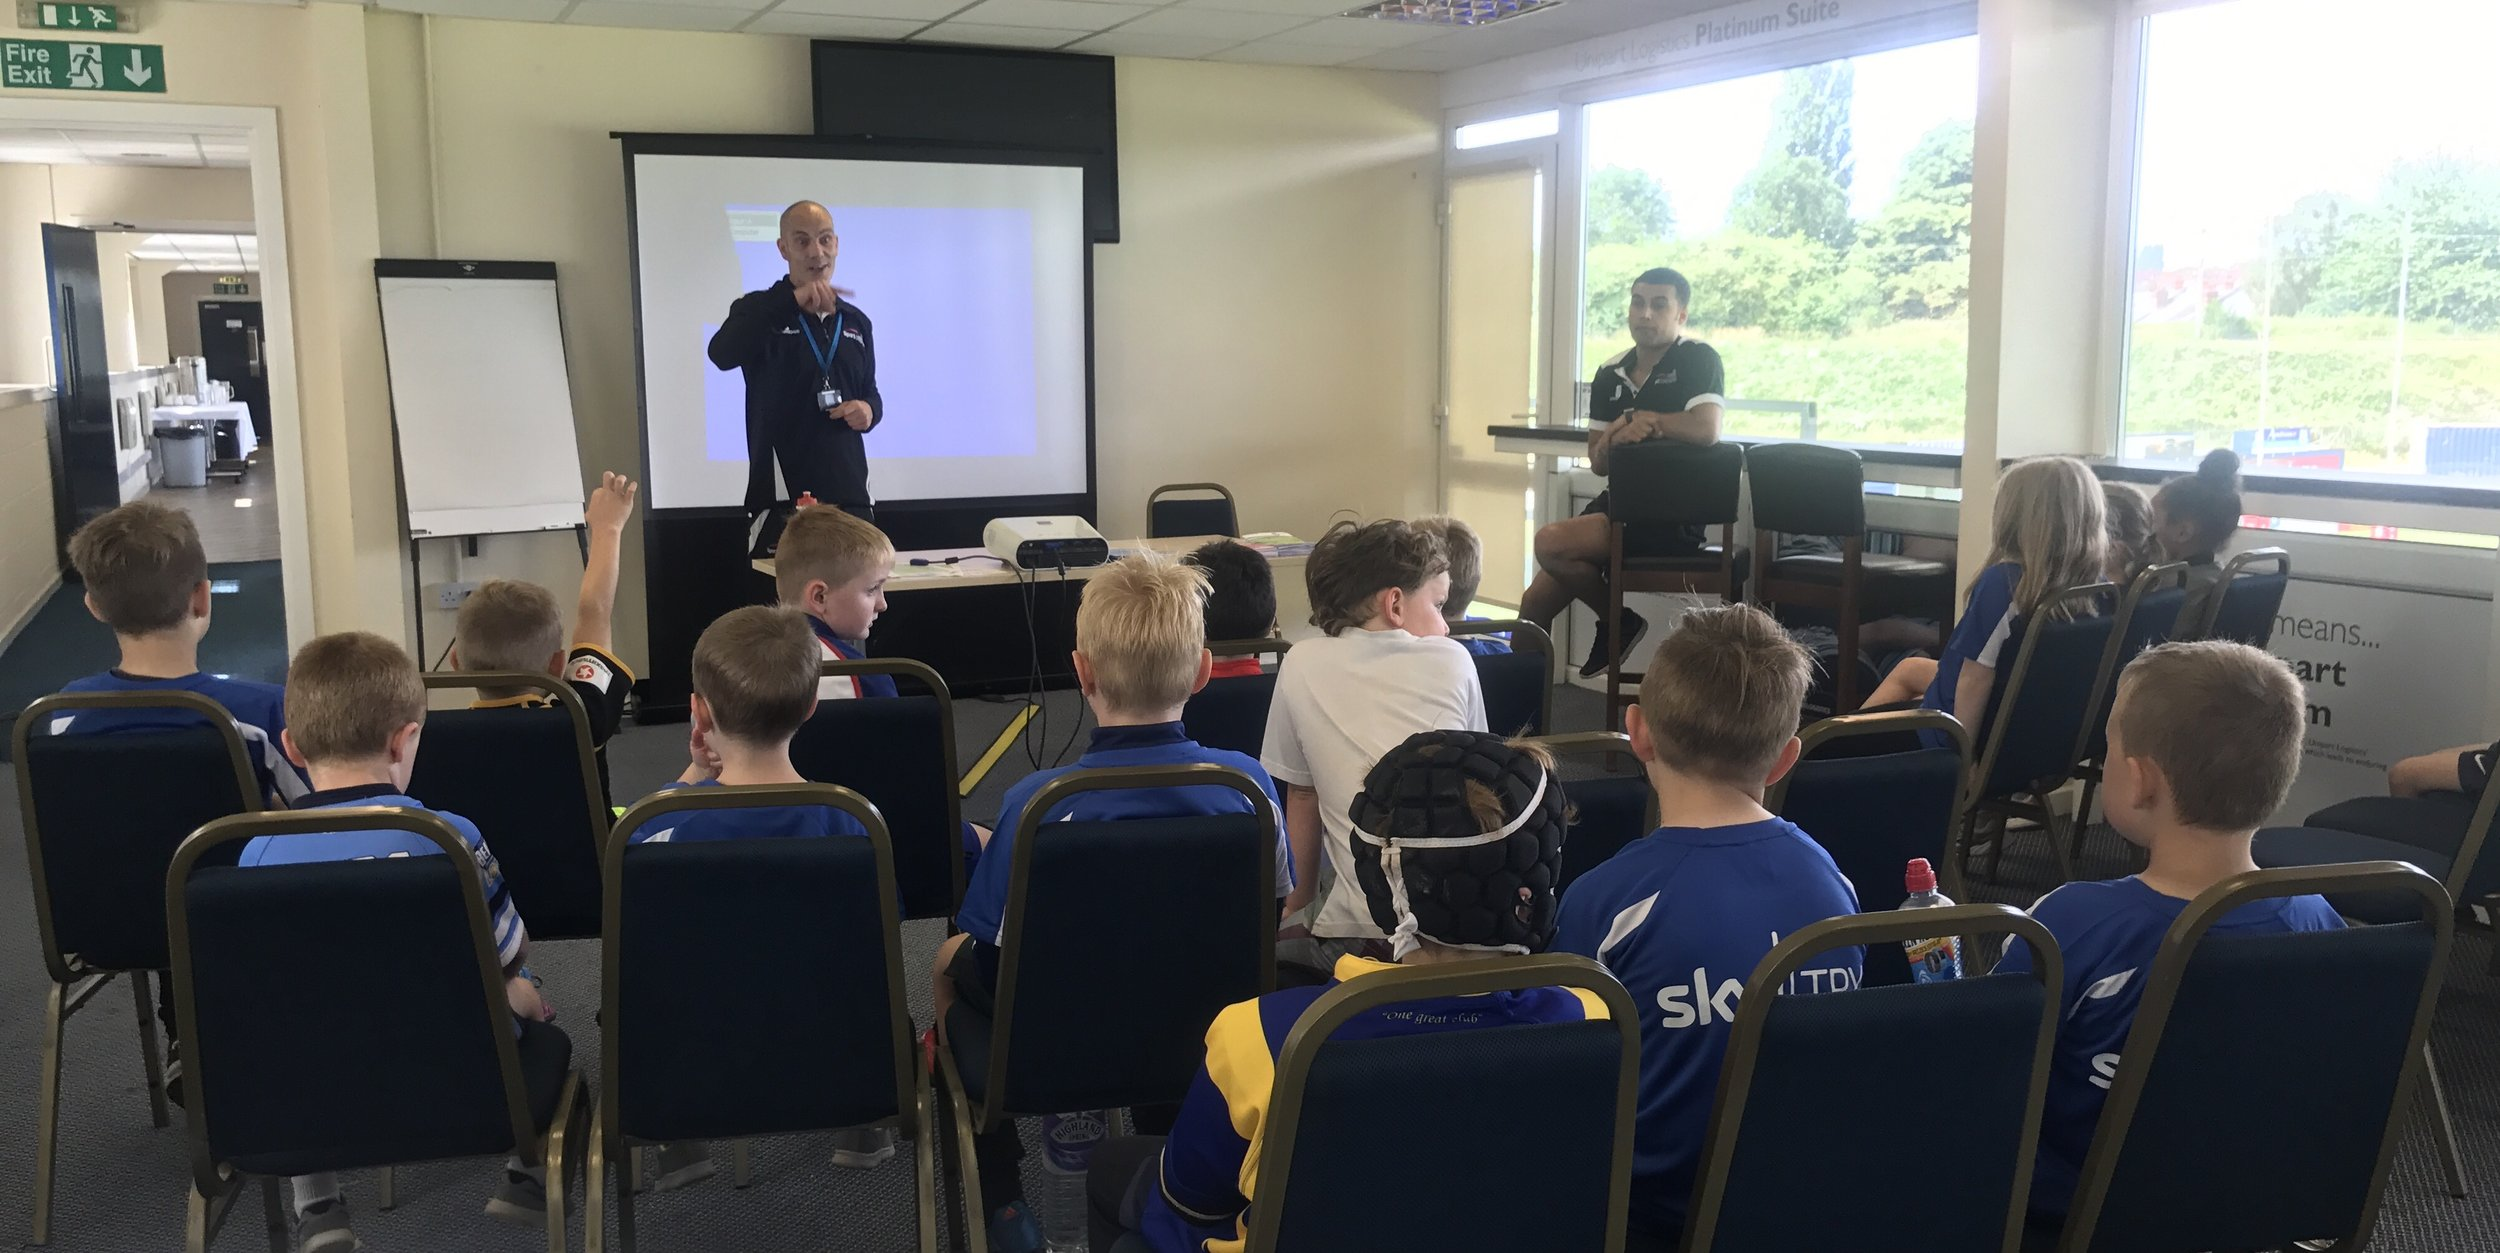 Coventry University Sport talking to children about healthy eating was just one of the activities